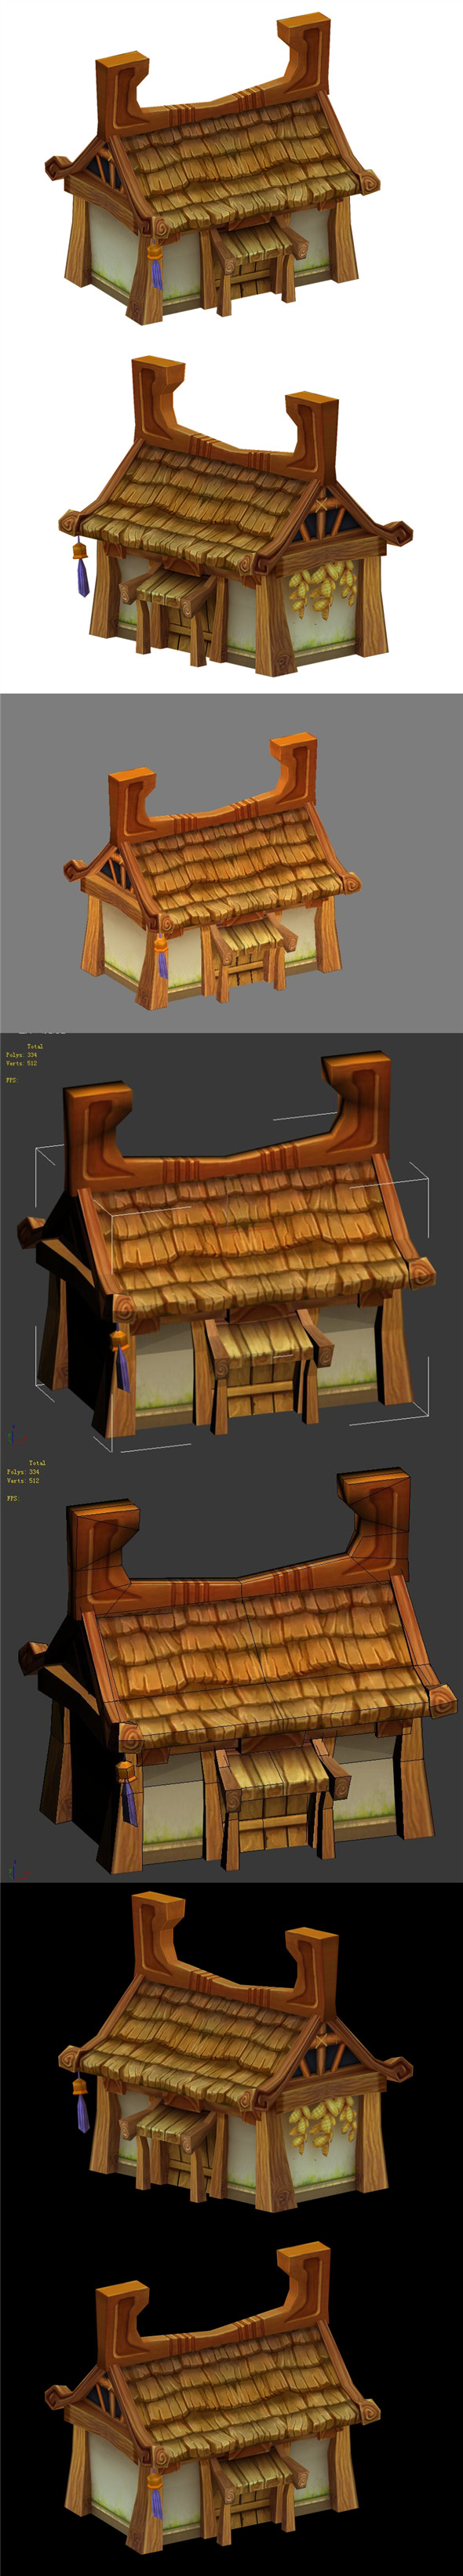 Low mold games - houses - 3DOcean Item for Sale